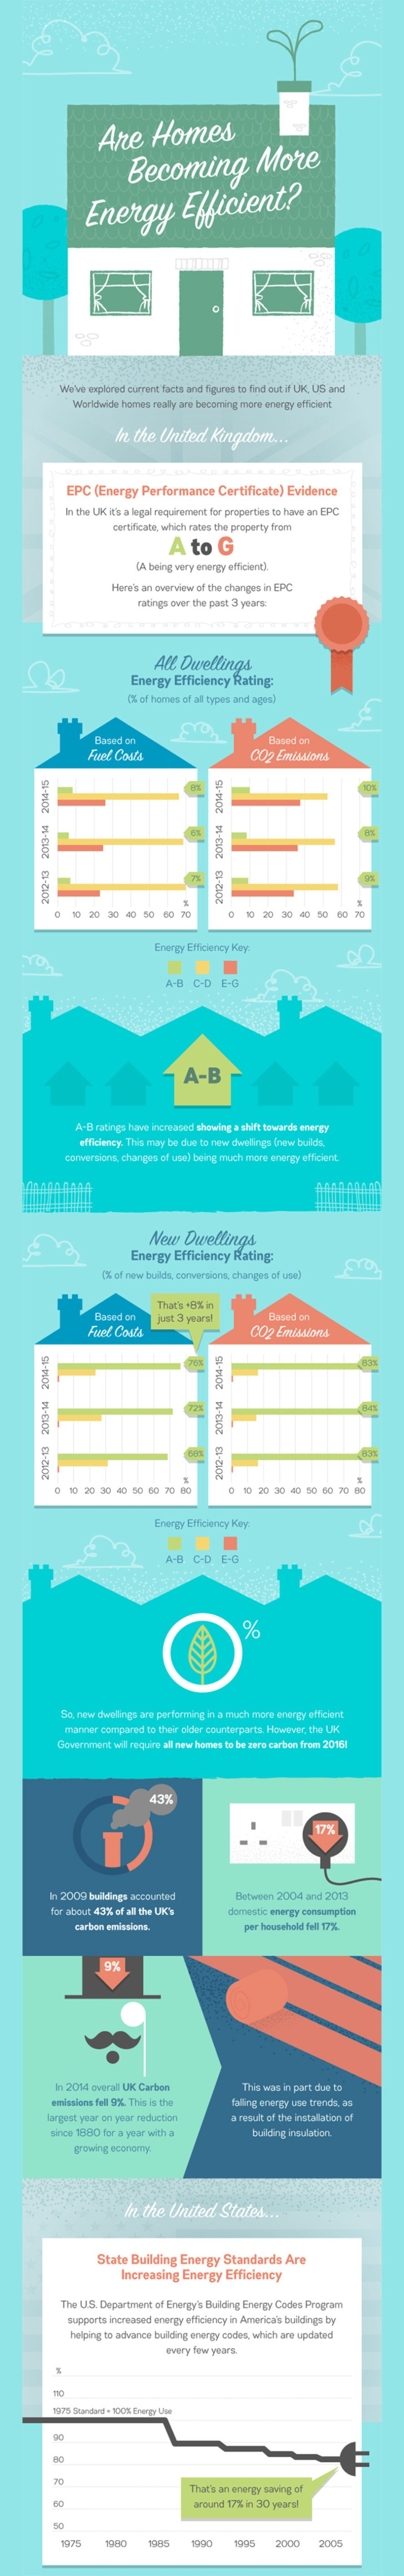 infographic, home efficiency, home emissions, carbon emissions, carbon, greenhouse emissions, greenhouse gasses, carbon emissions, global emissions, global warming, climate change, vibrant doors